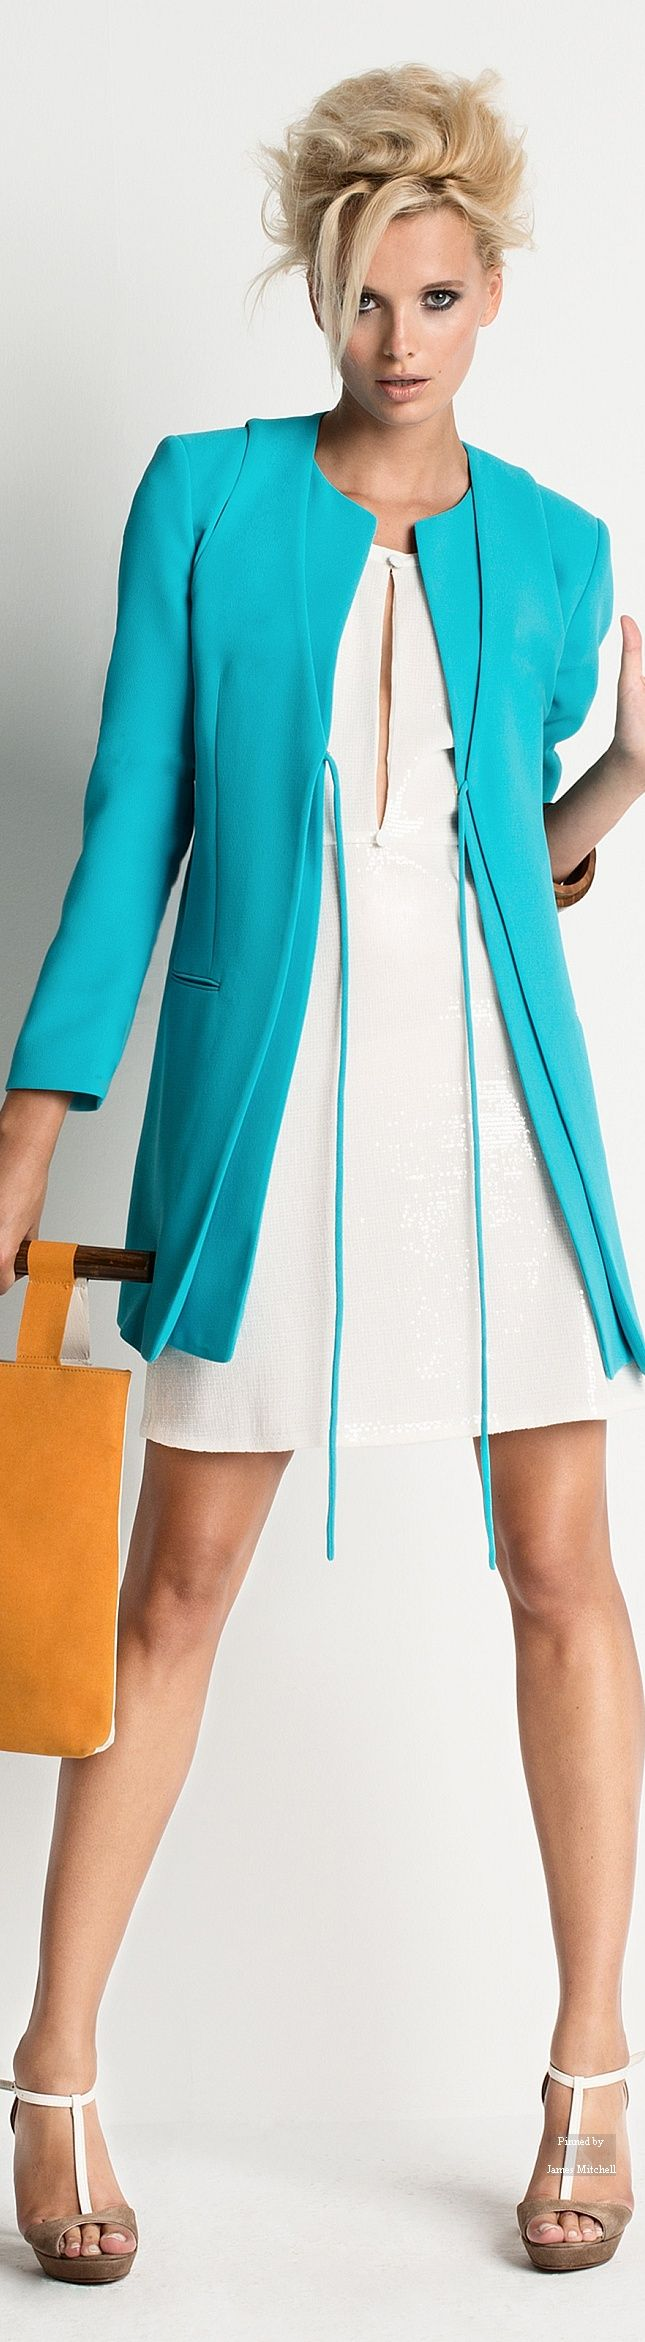 Spring Summer 2015. Cyan blazer white short dress women fashion style clothing